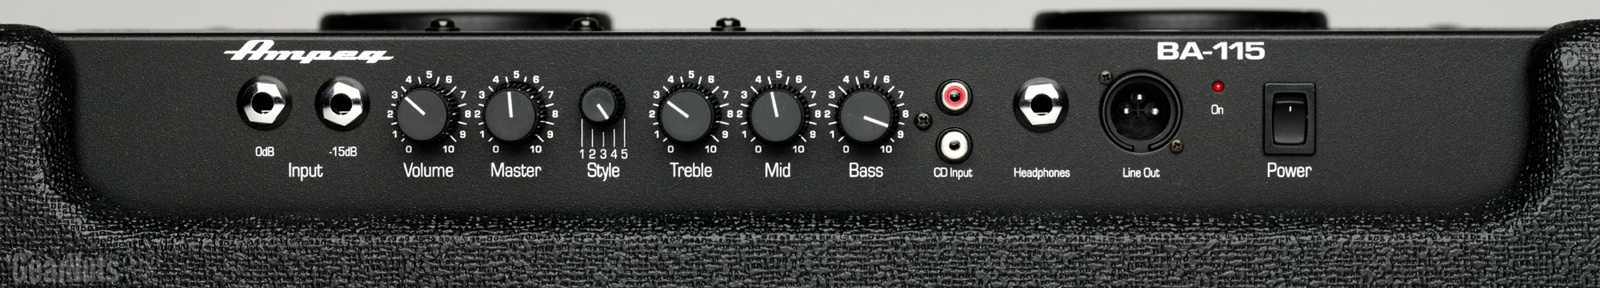 ampeg ba115 top preamp control panel